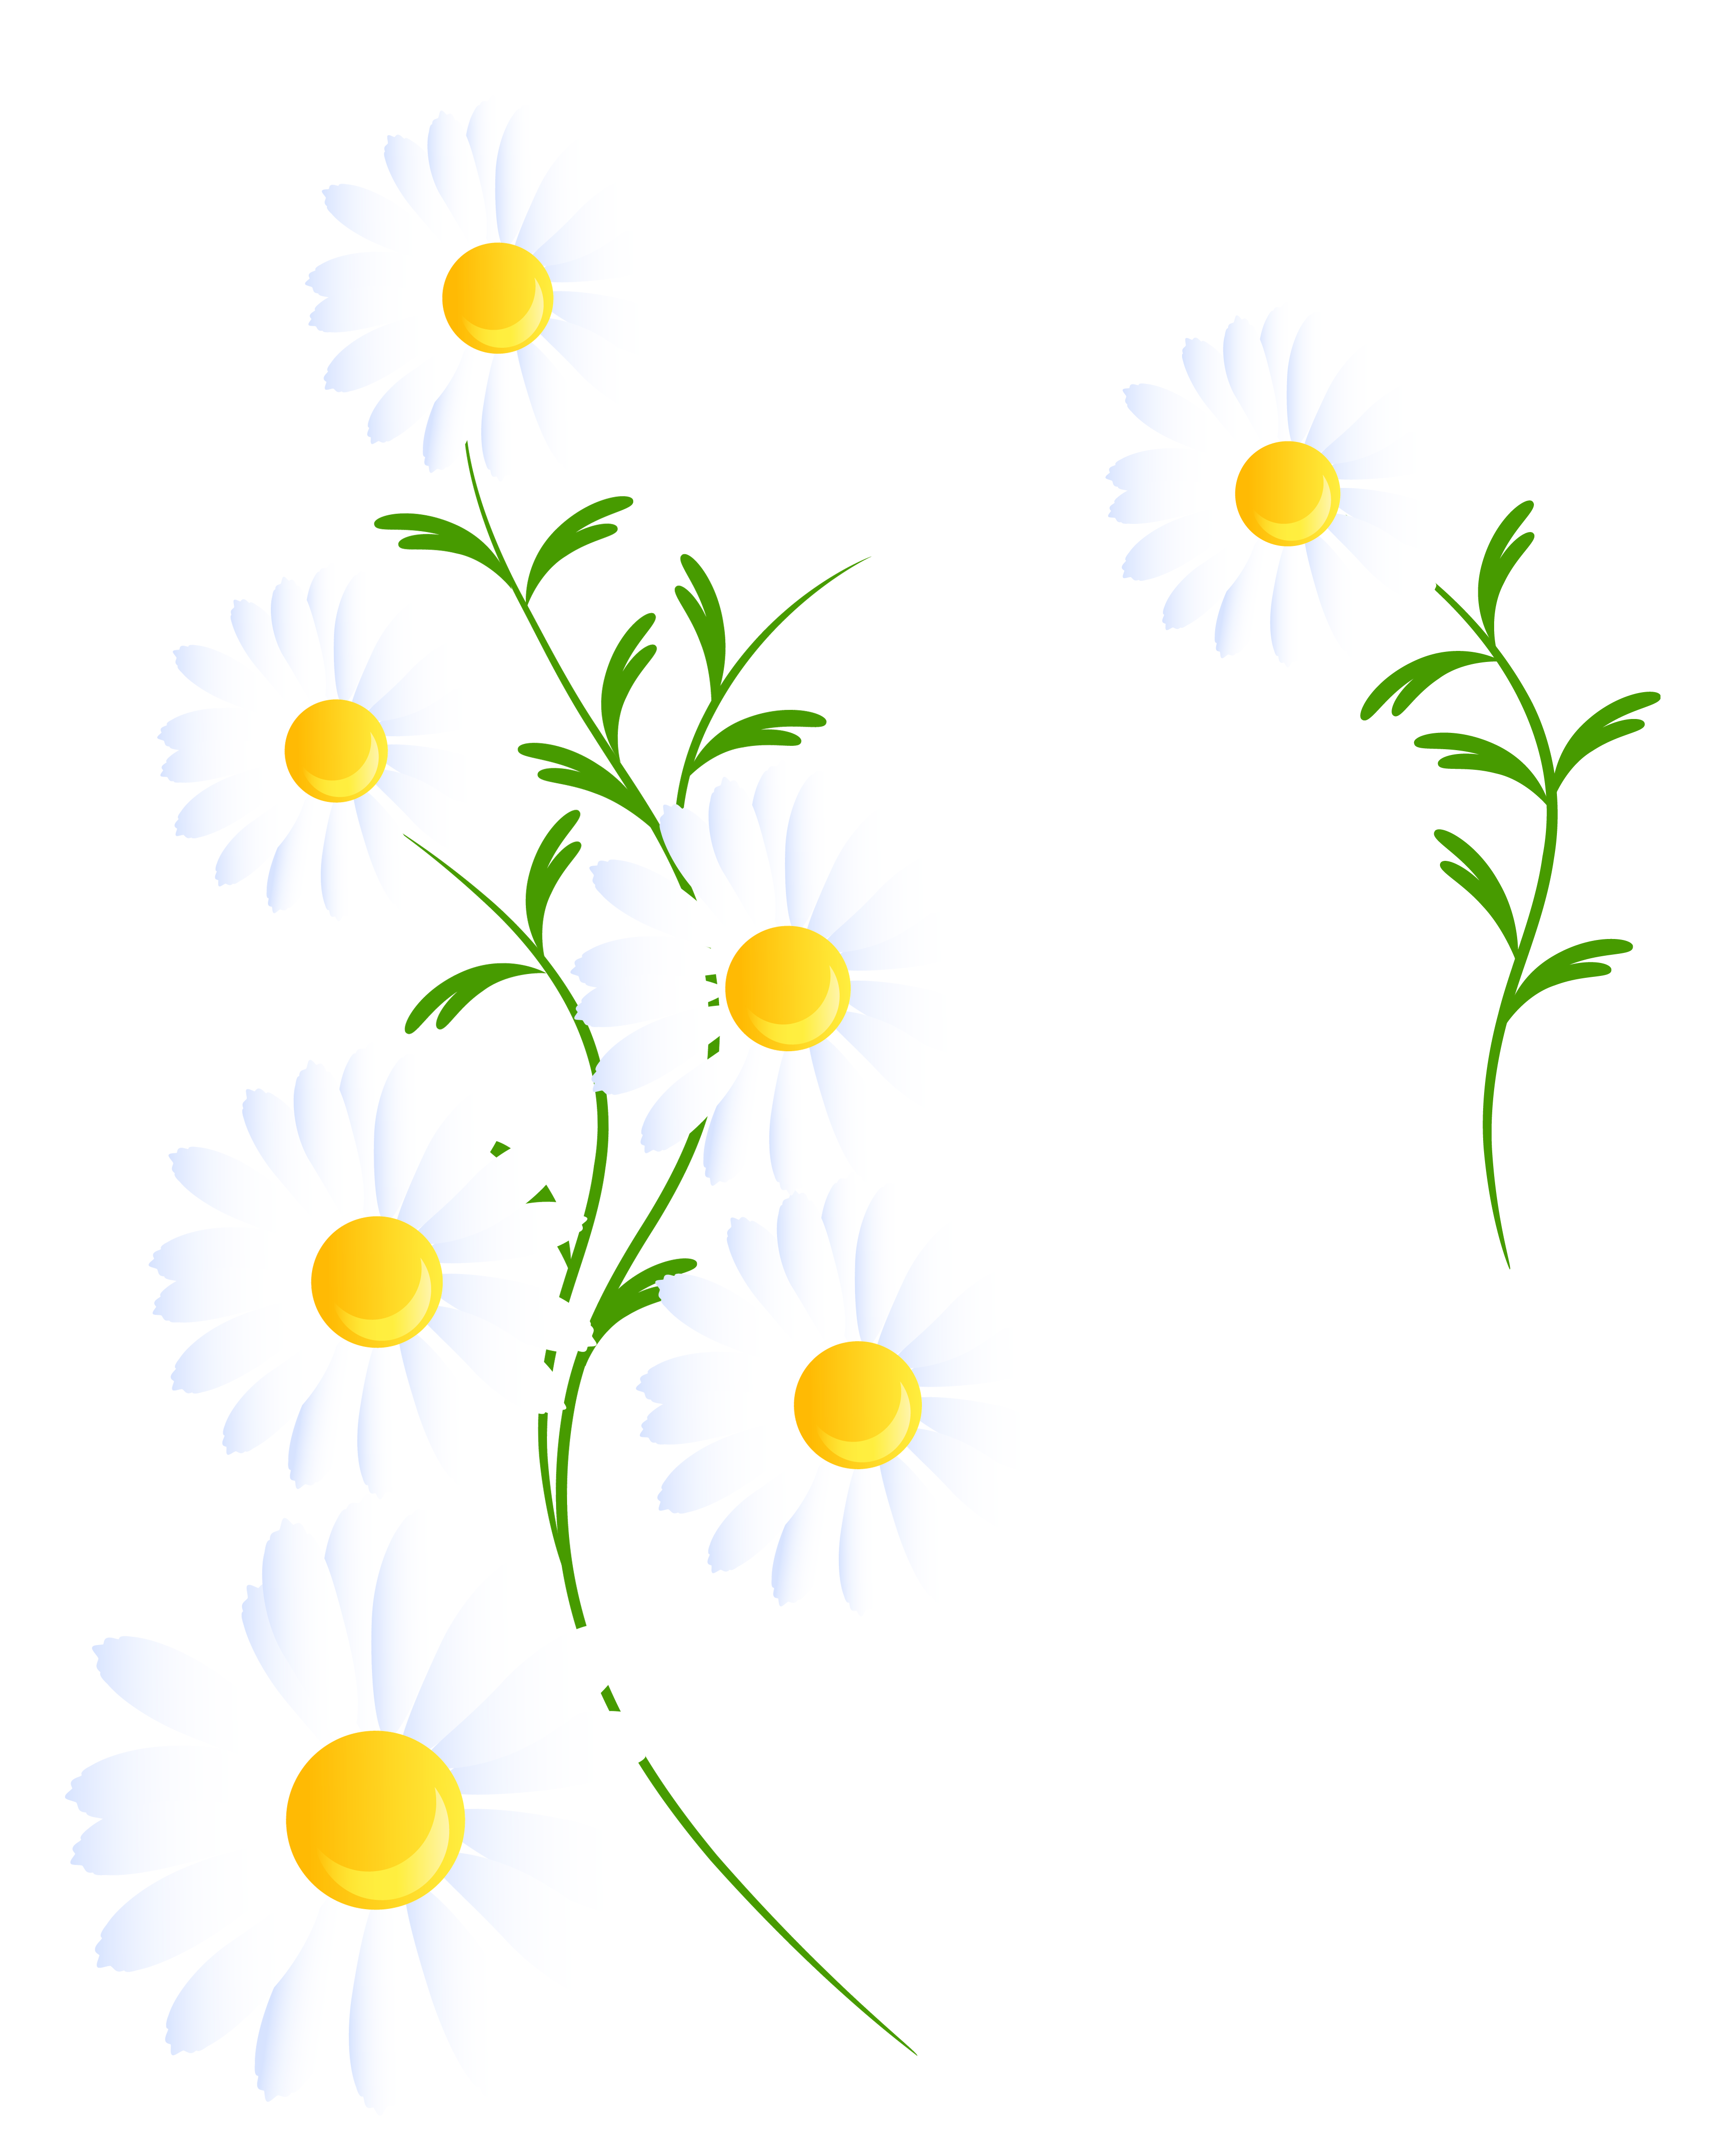 Transparent white daisies decoration. Daisy clipart frame free library